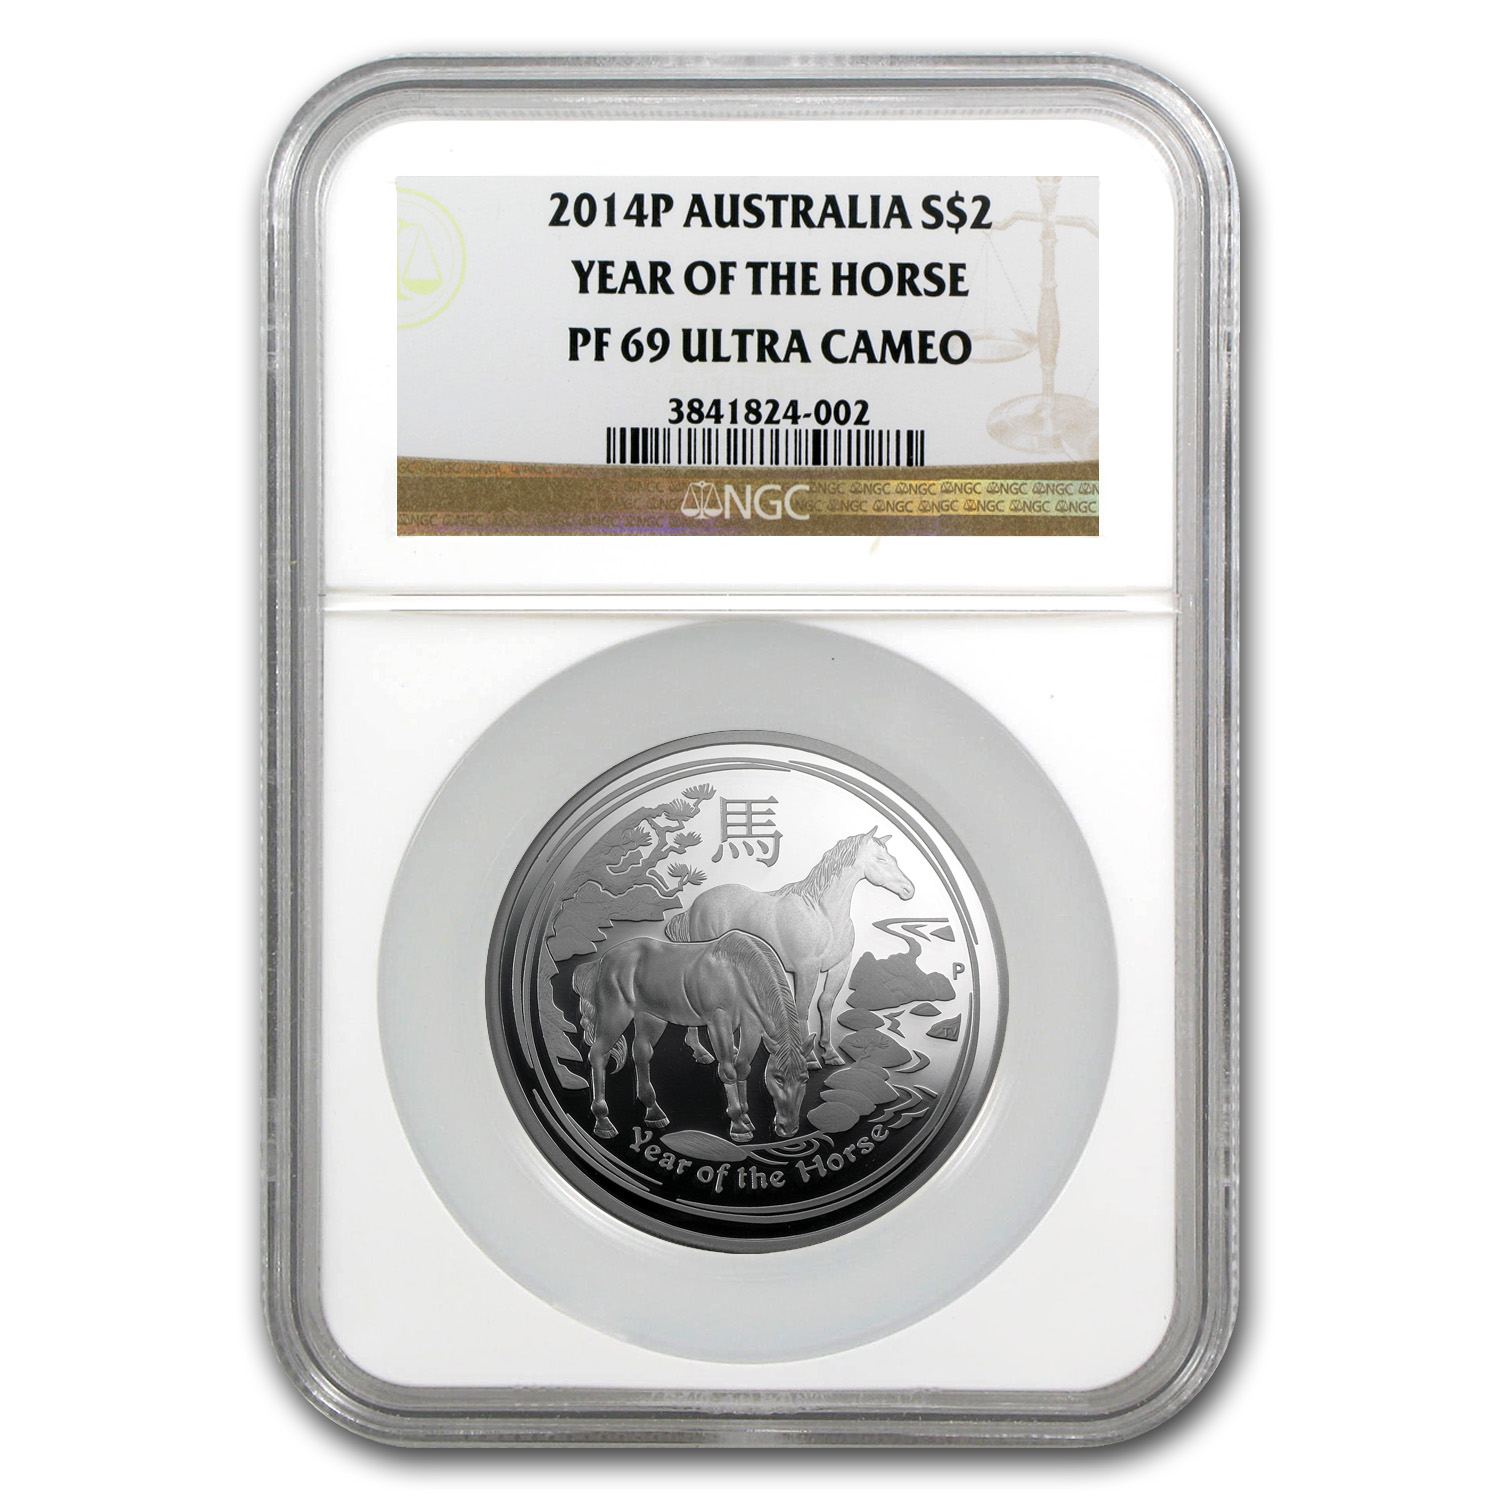 2014 2 oz Silver Year of the Horse Proof Coin PF-69 NGC